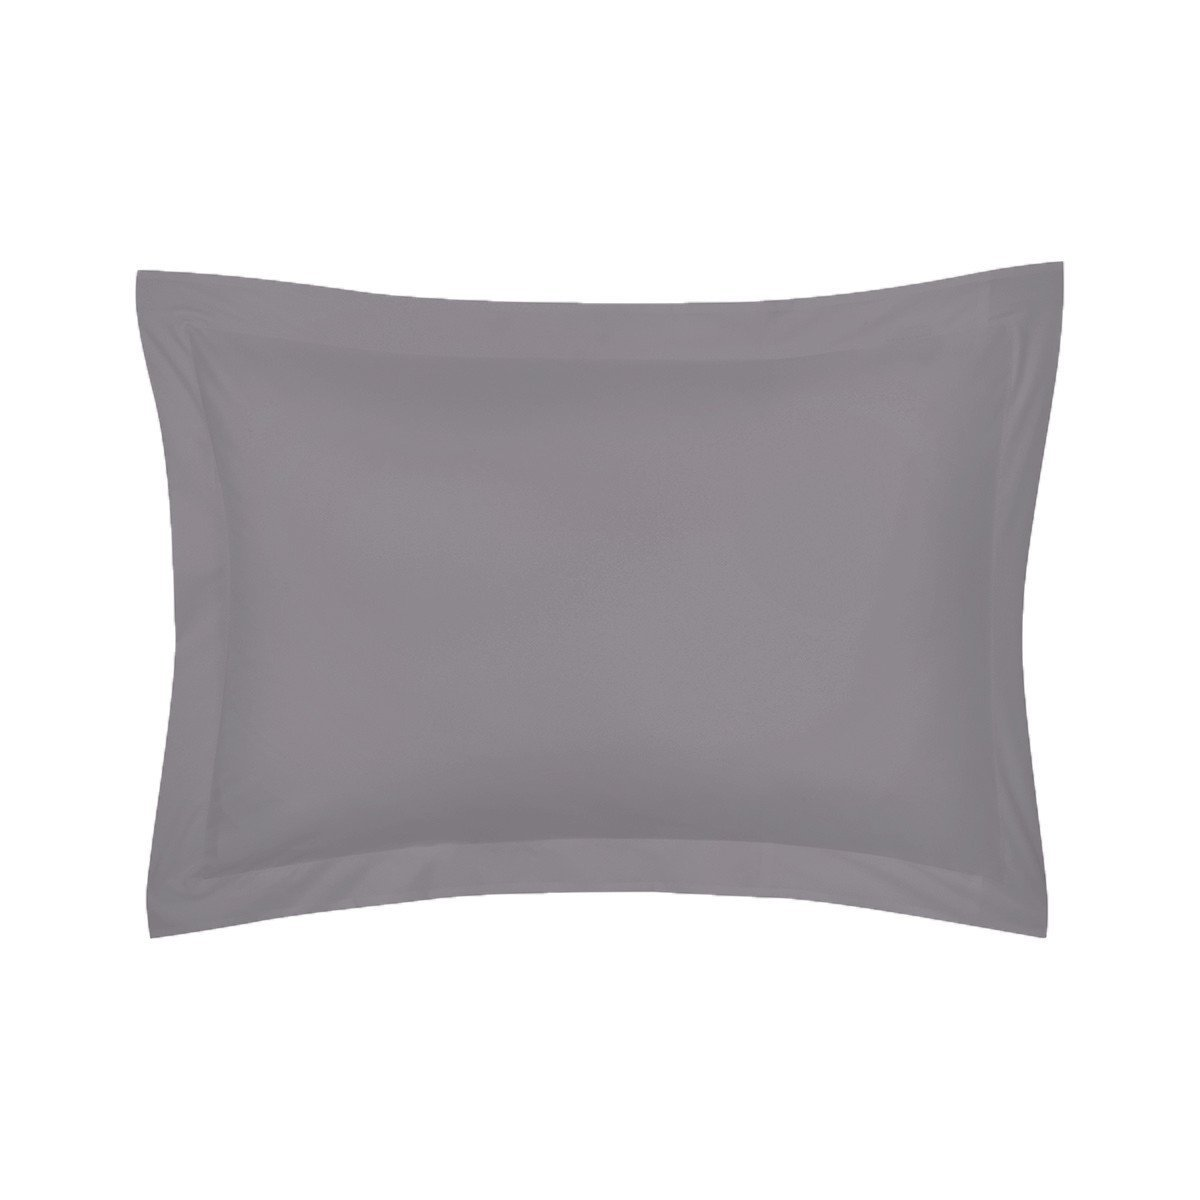 Roma Platine Gray Bedding Collection by Yves Delorme | Fig Linens - Gray bed linen, sham